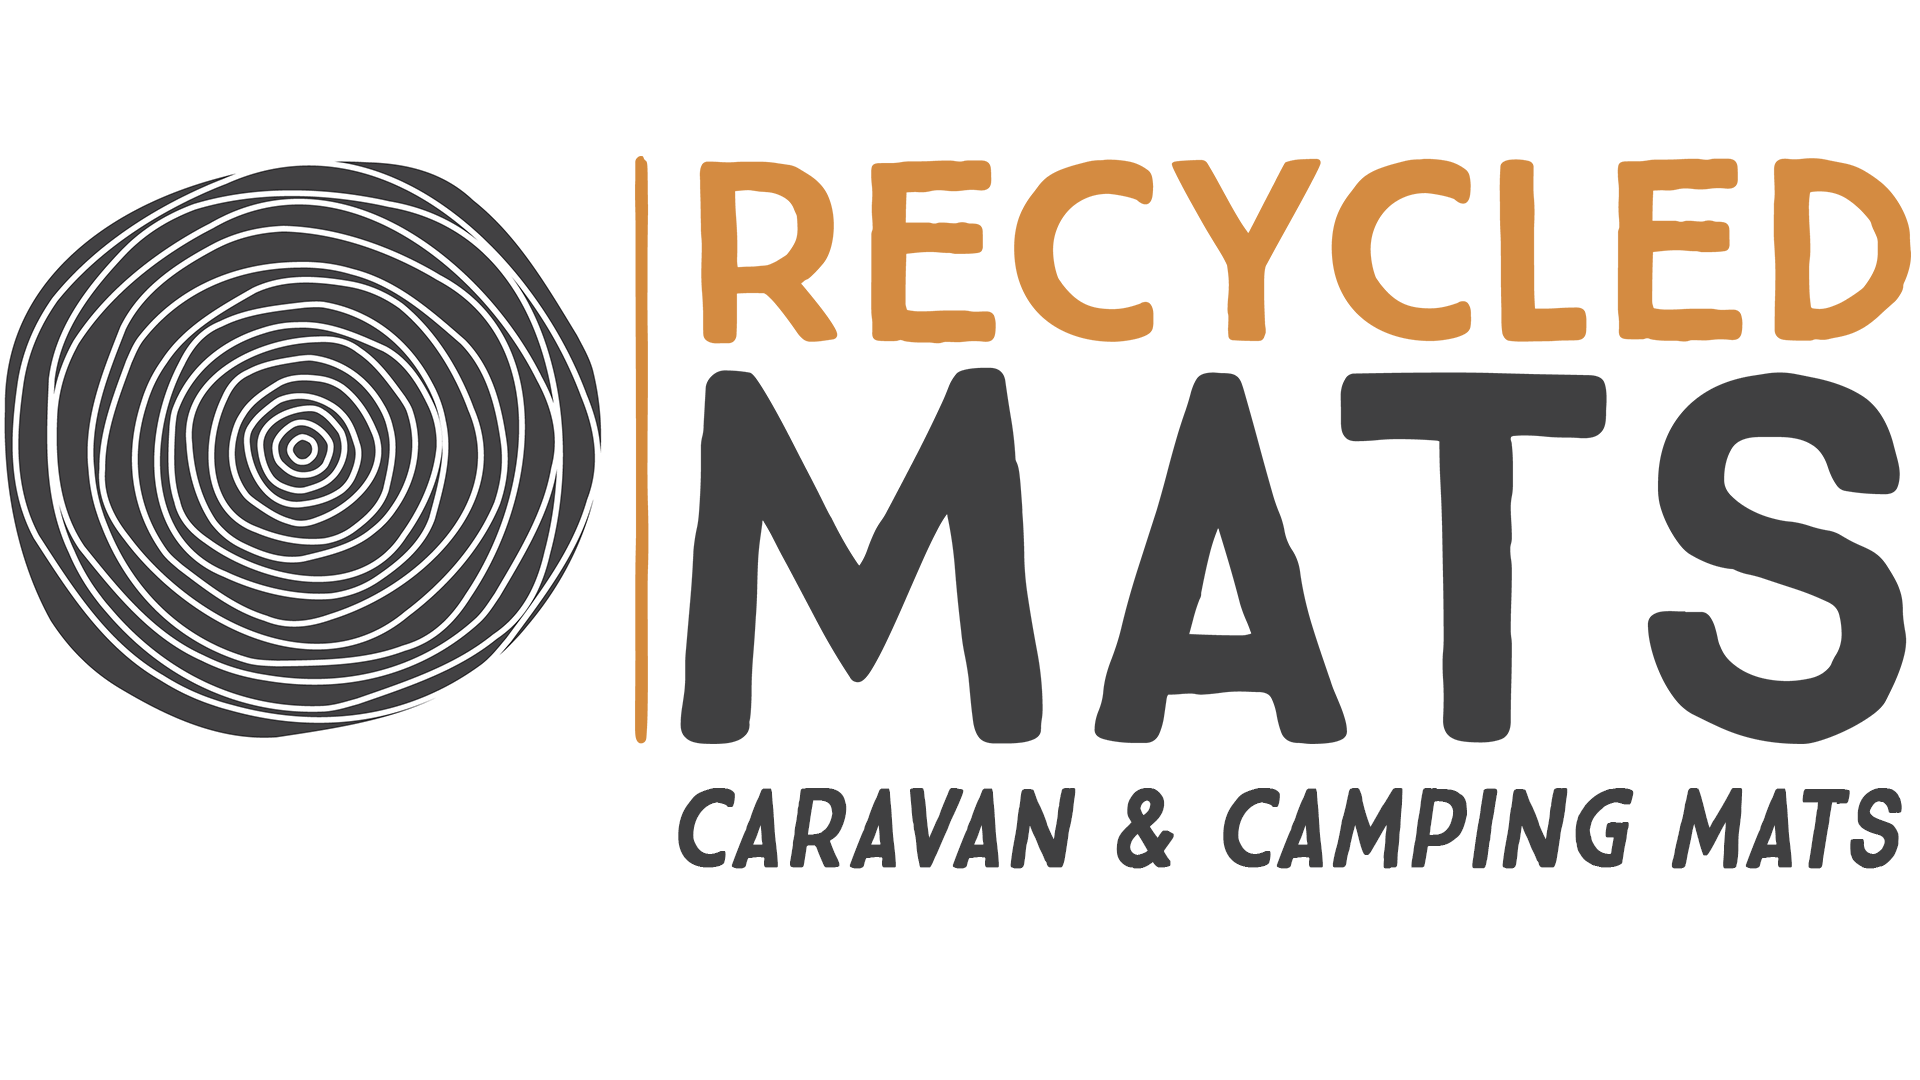 RECYCLEDMATS_LOGO_STACKED CARAVANCAMPING (1).png